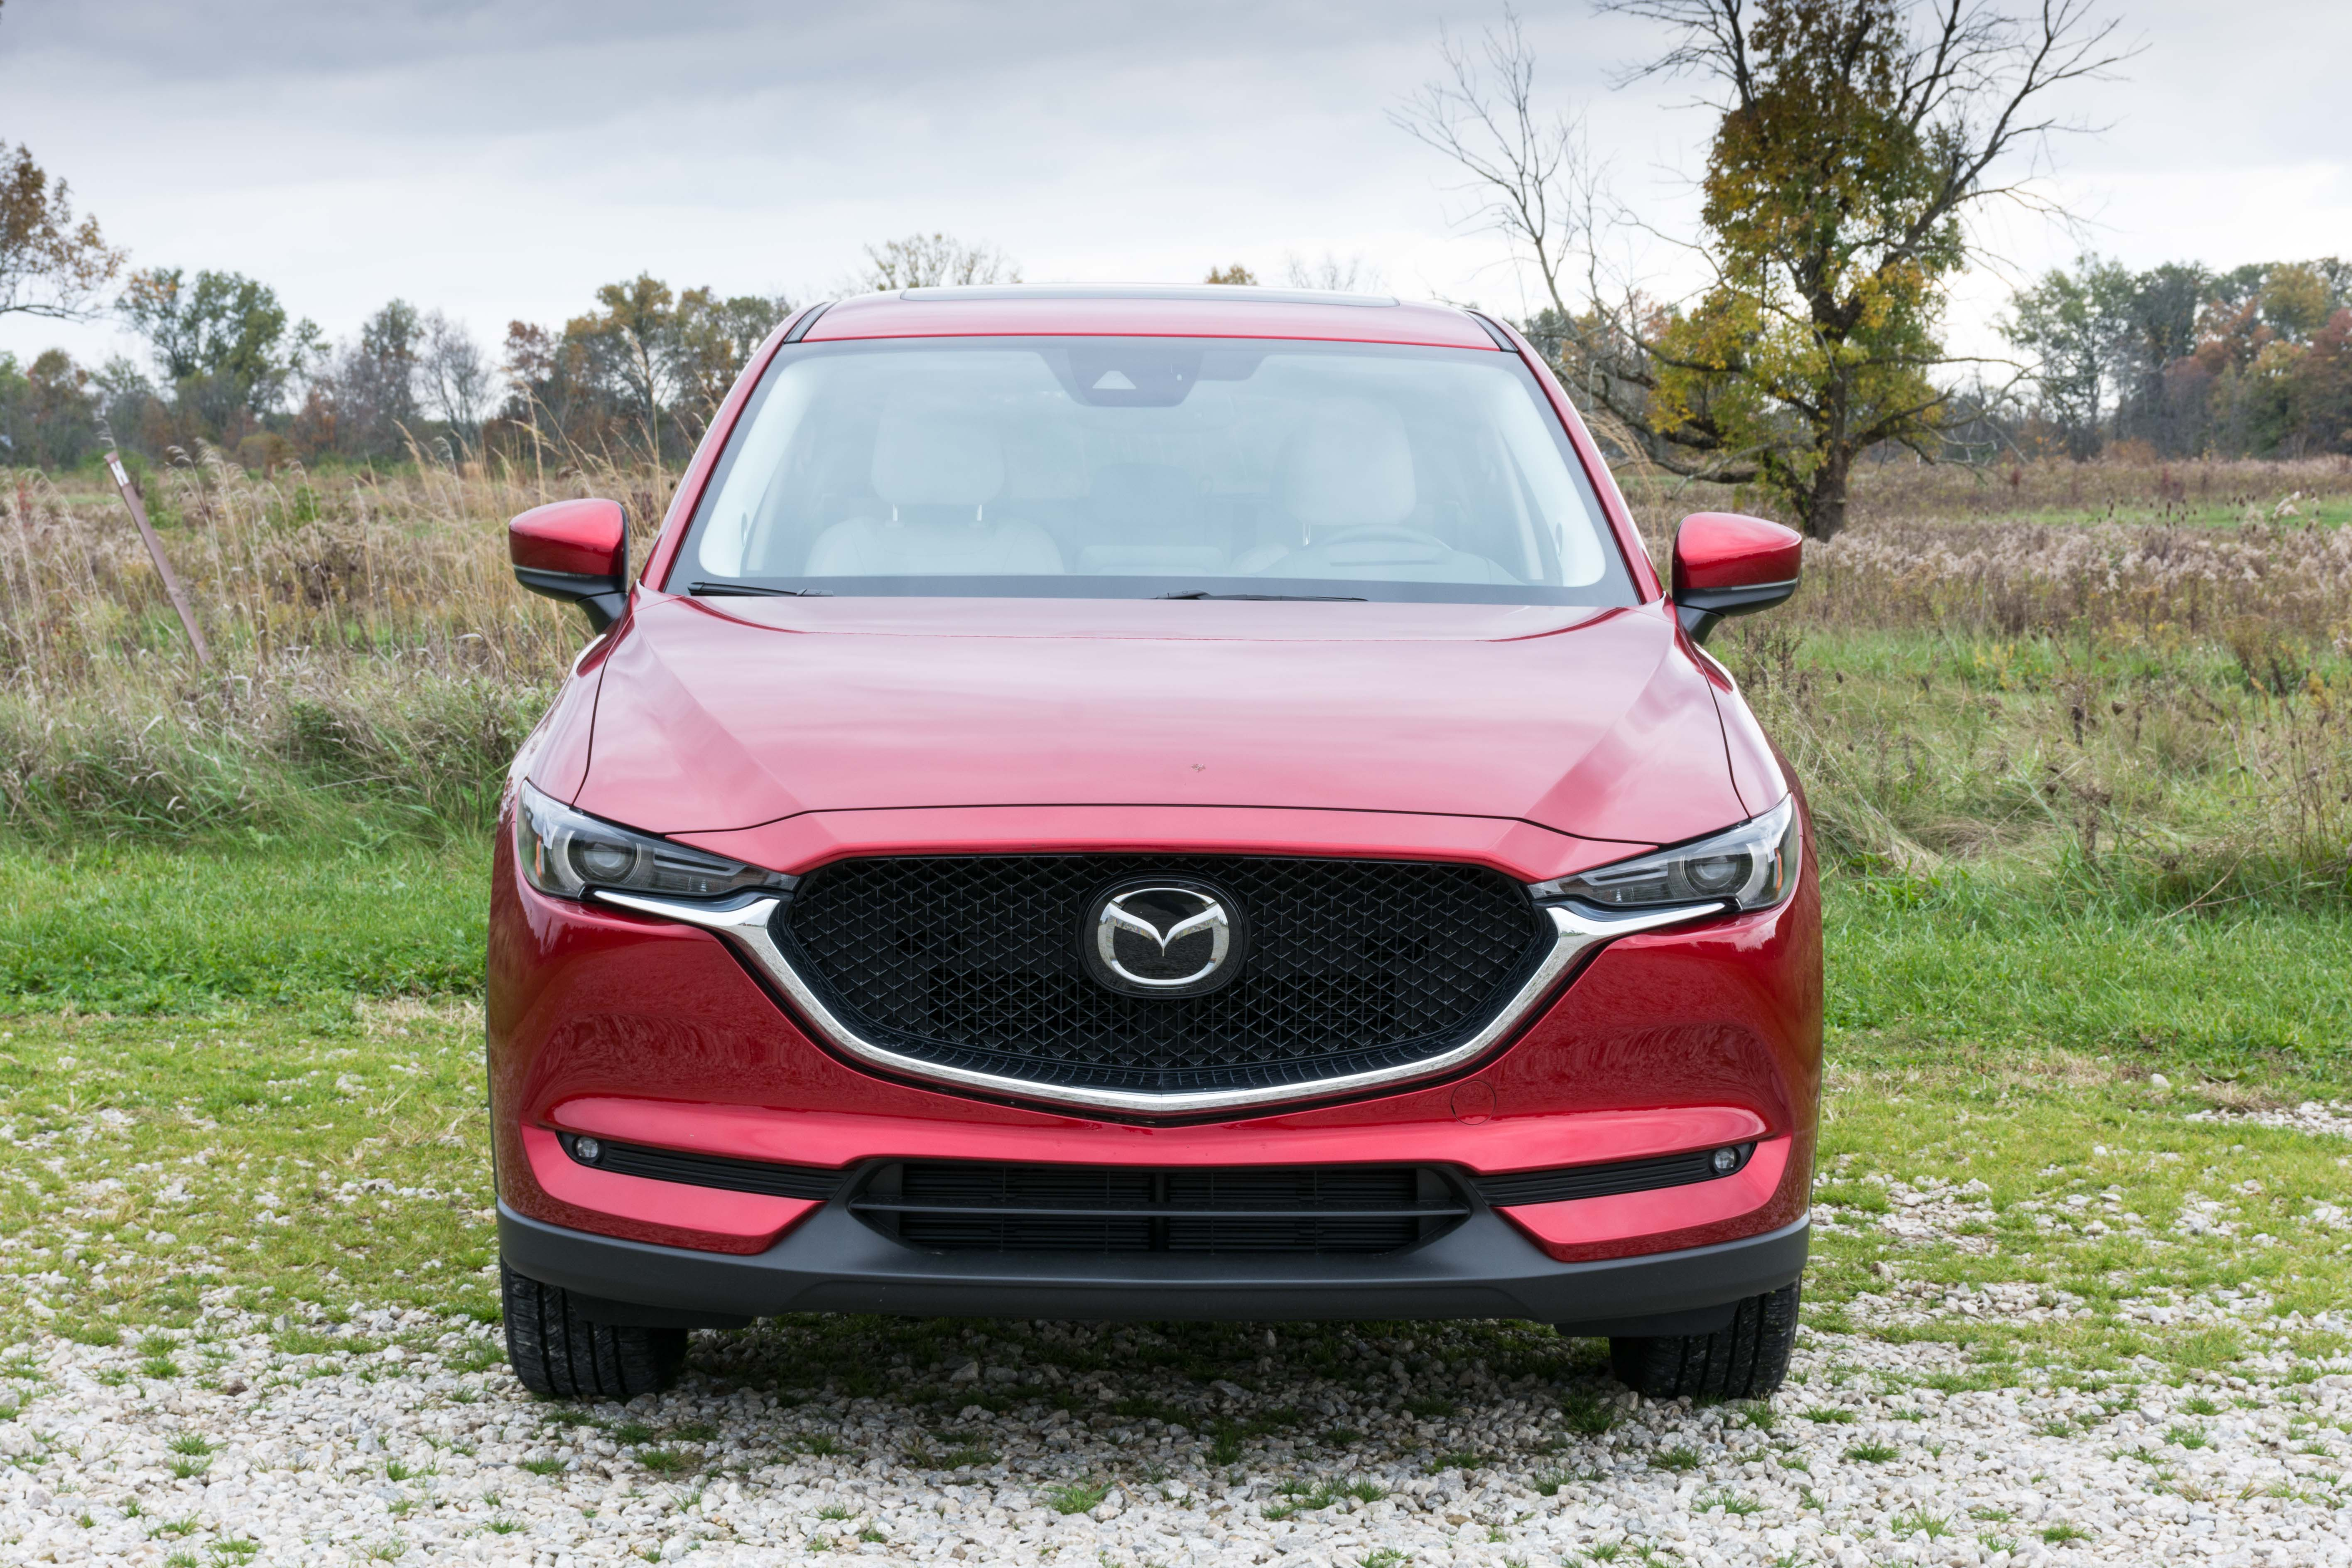 Mazda CX-5 exterior specifications